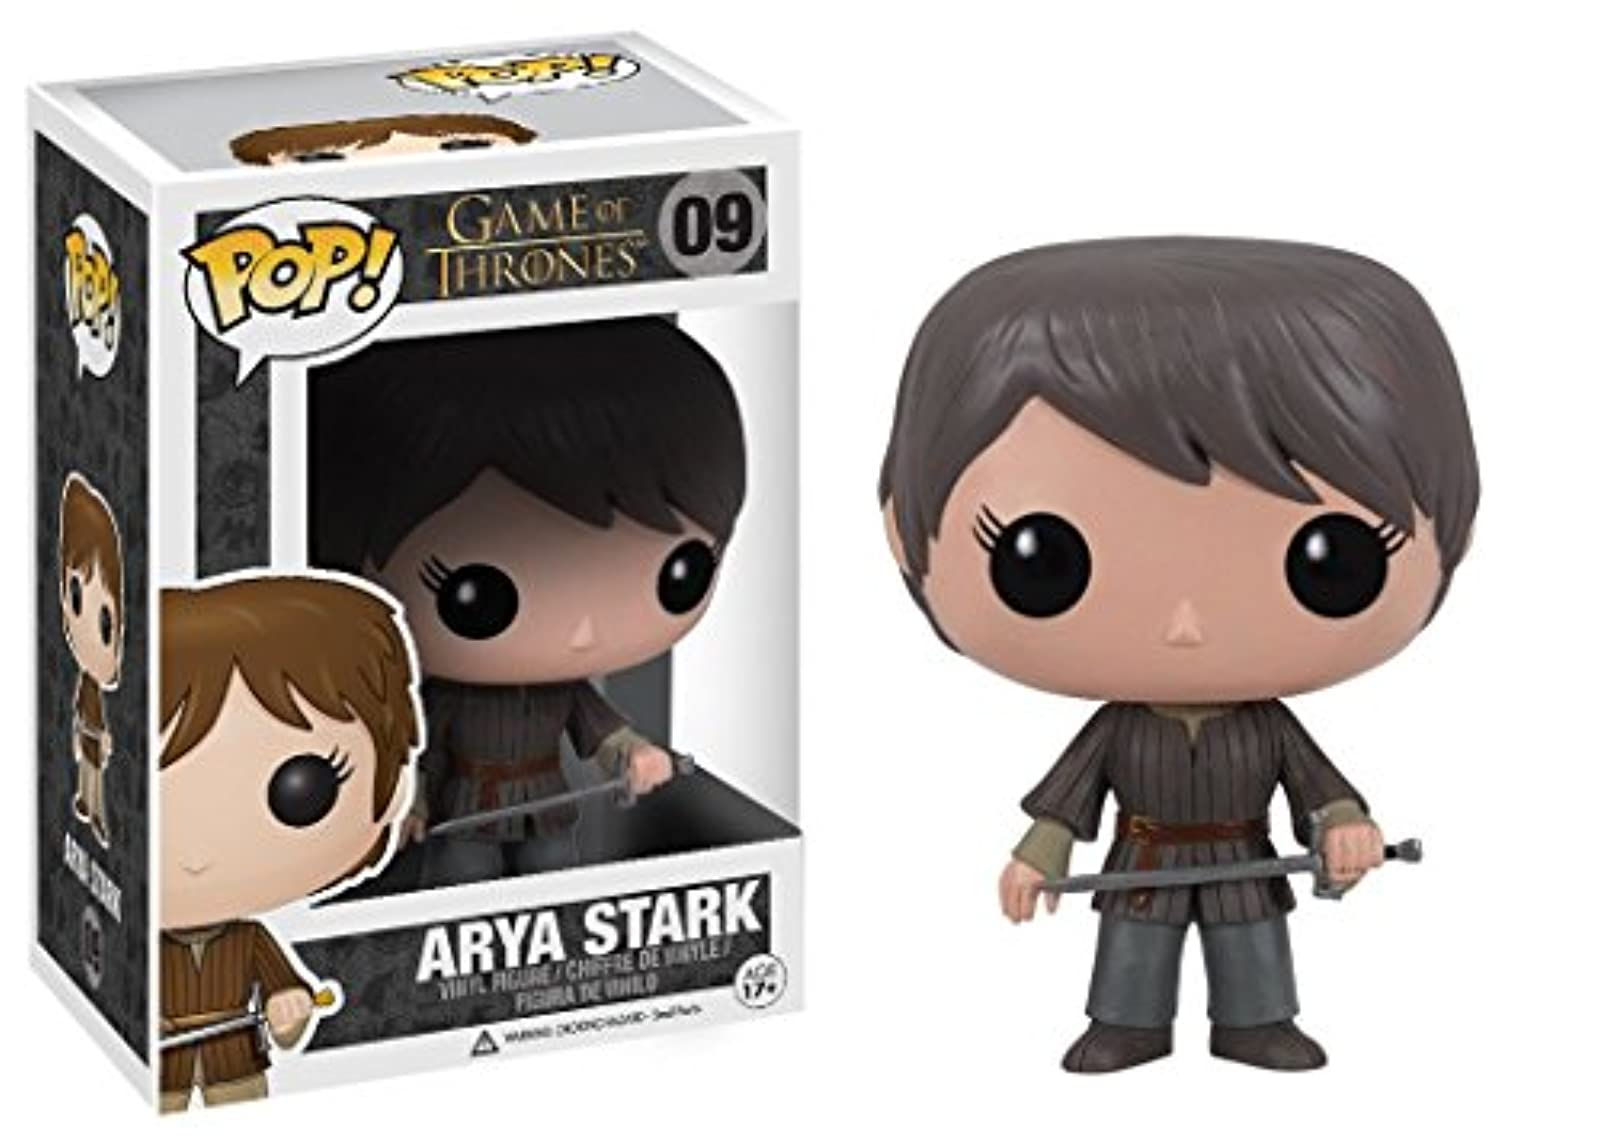 Funko Pop Game Of Thrones: Arya Stark Vinyl Figure Toy